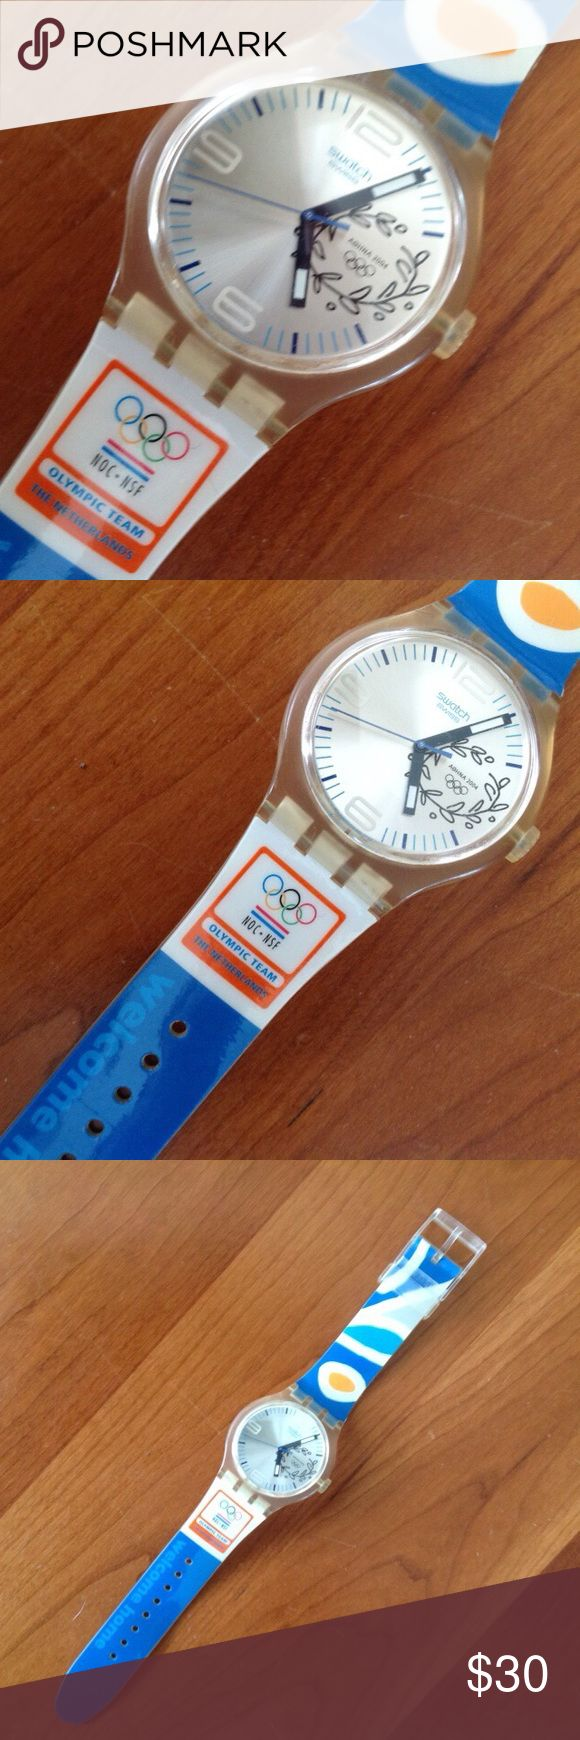 """Limited edition Olympic swatch Vintage Swatch 2004 Athens Olympics  Fan Apparel The Netherlands Welcome Home Watch 10"""" long, 1 1/2"""" diameter watch face. Excellent condition.  Sold without battery.   The Athens Olympic NOC for the Netherlands has the code SUDK106M. Only 900 pieces made: 450 pieces were given to athletes and coaches and 450 pieces were sold to collectors. Swatch Accessories Watches"""